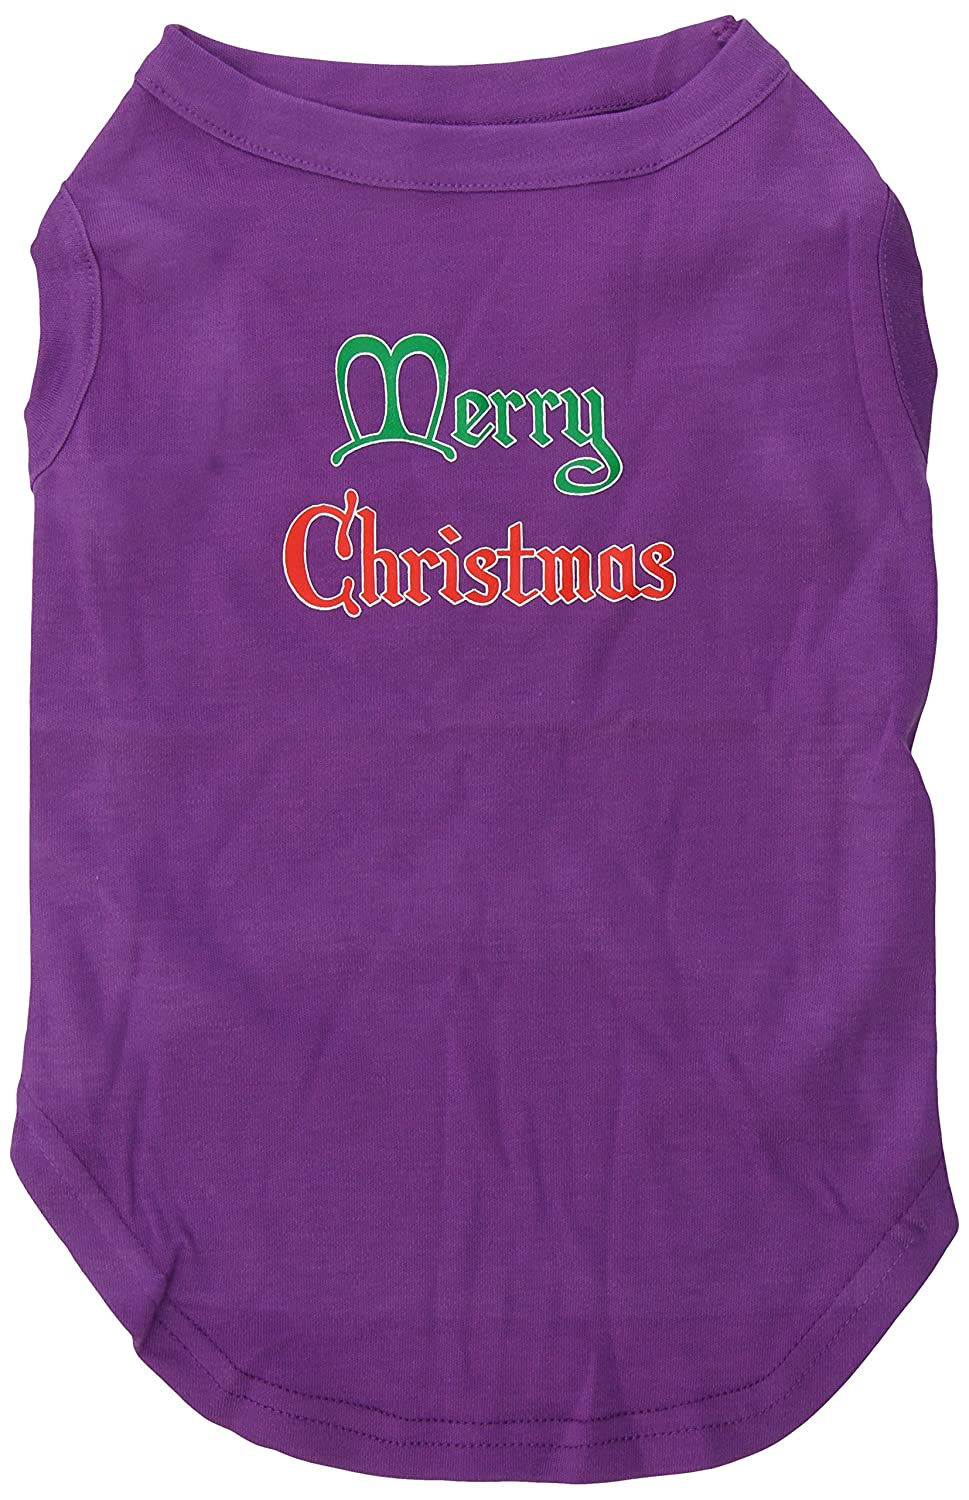 Dog   Cat   Pet Charms Merry Christmas Screen Print Shirt Purple XL (16)